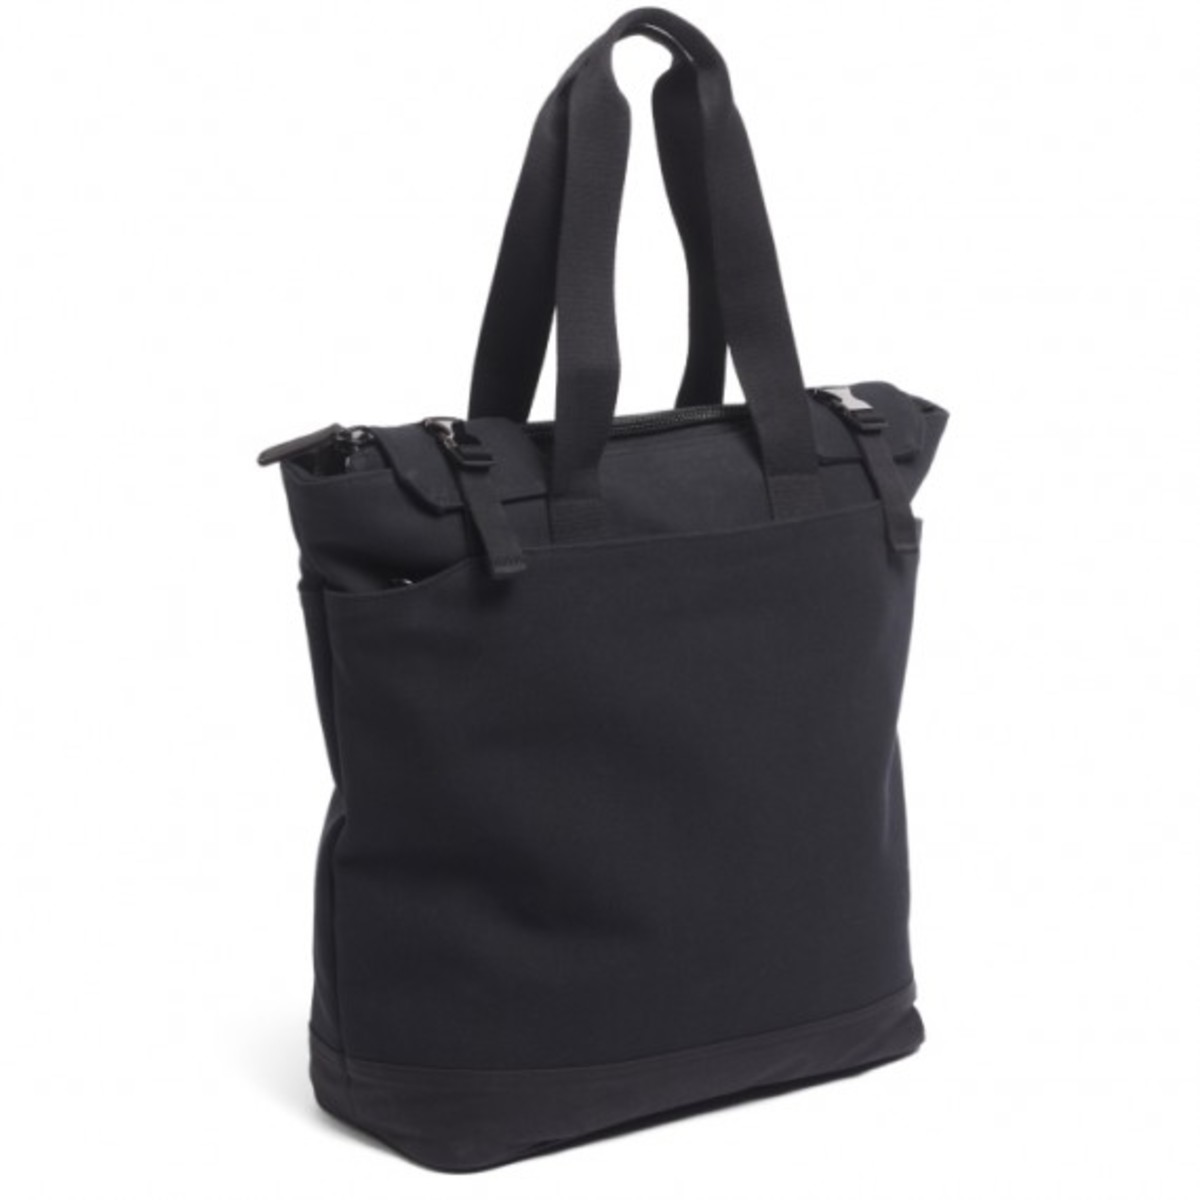 c6-bag-collection-10